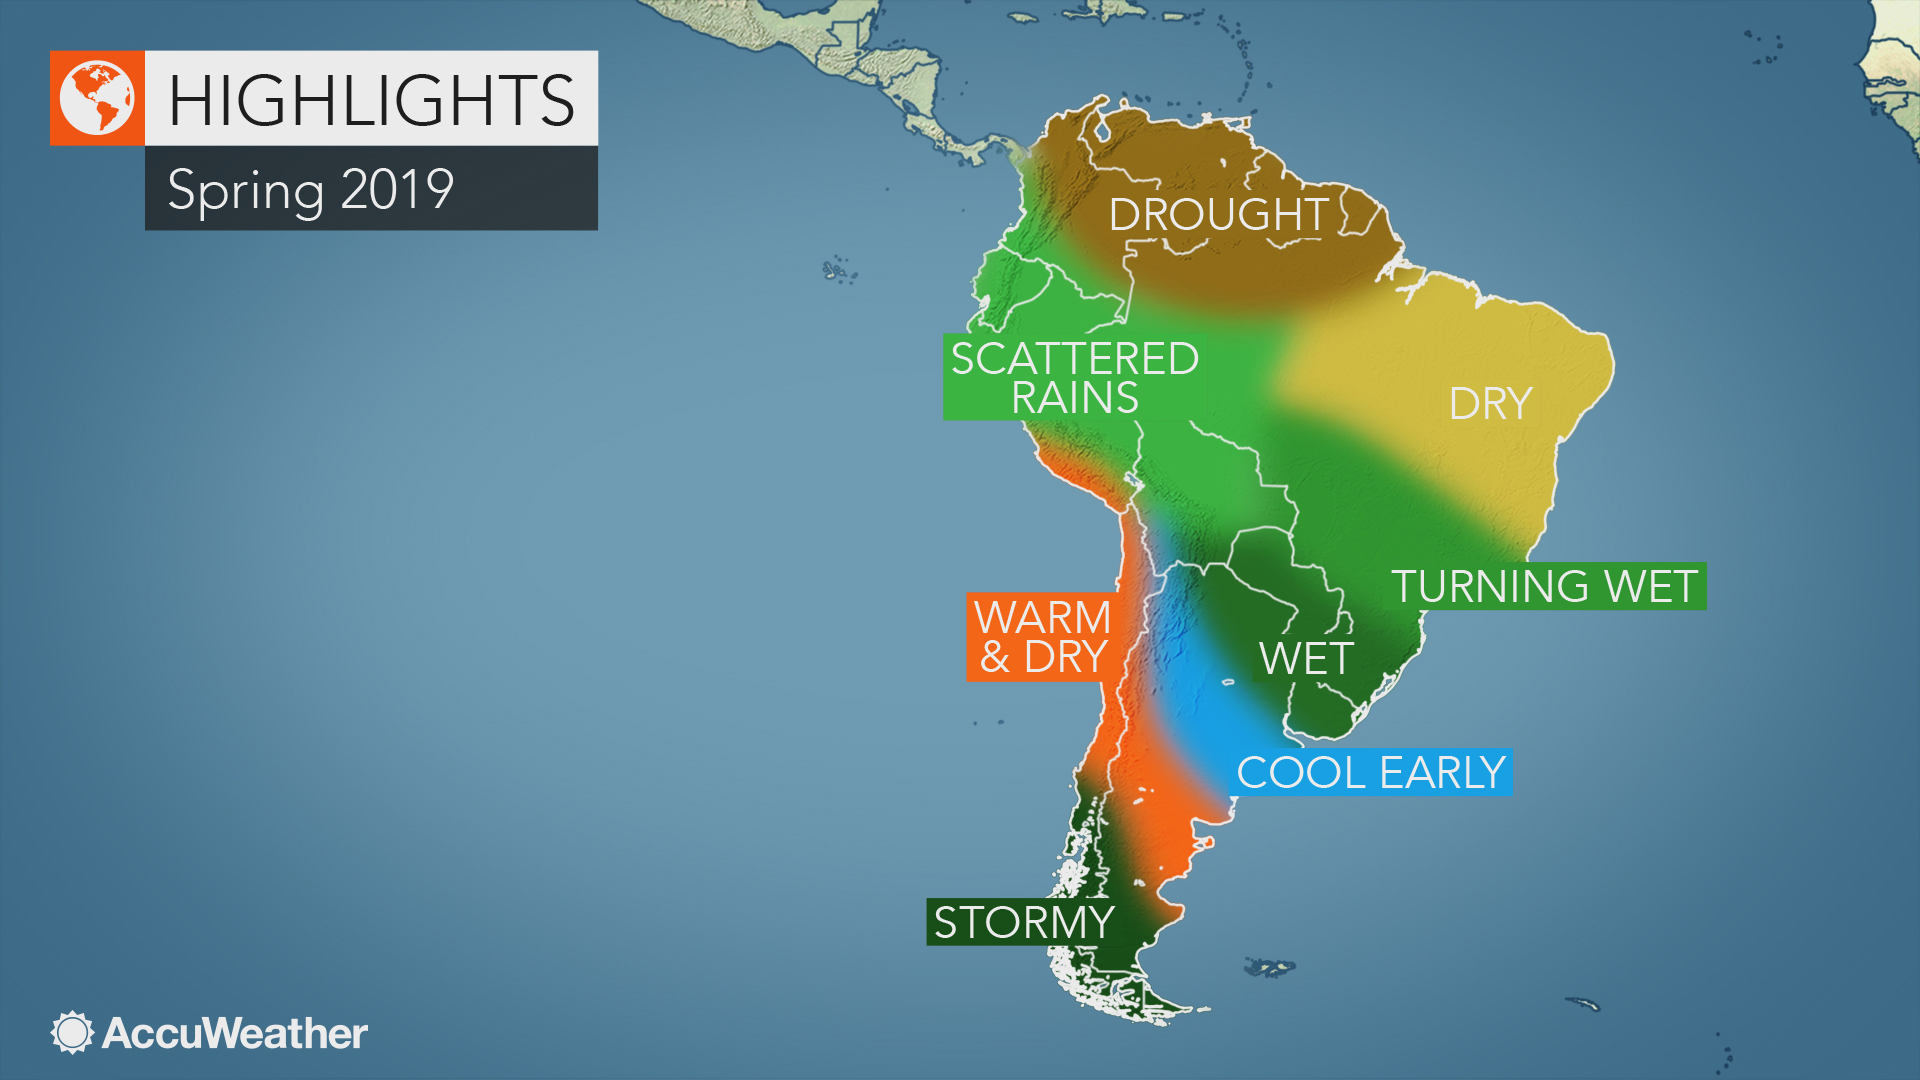 Barranca Weather - AccuWeather Forecast for LOR